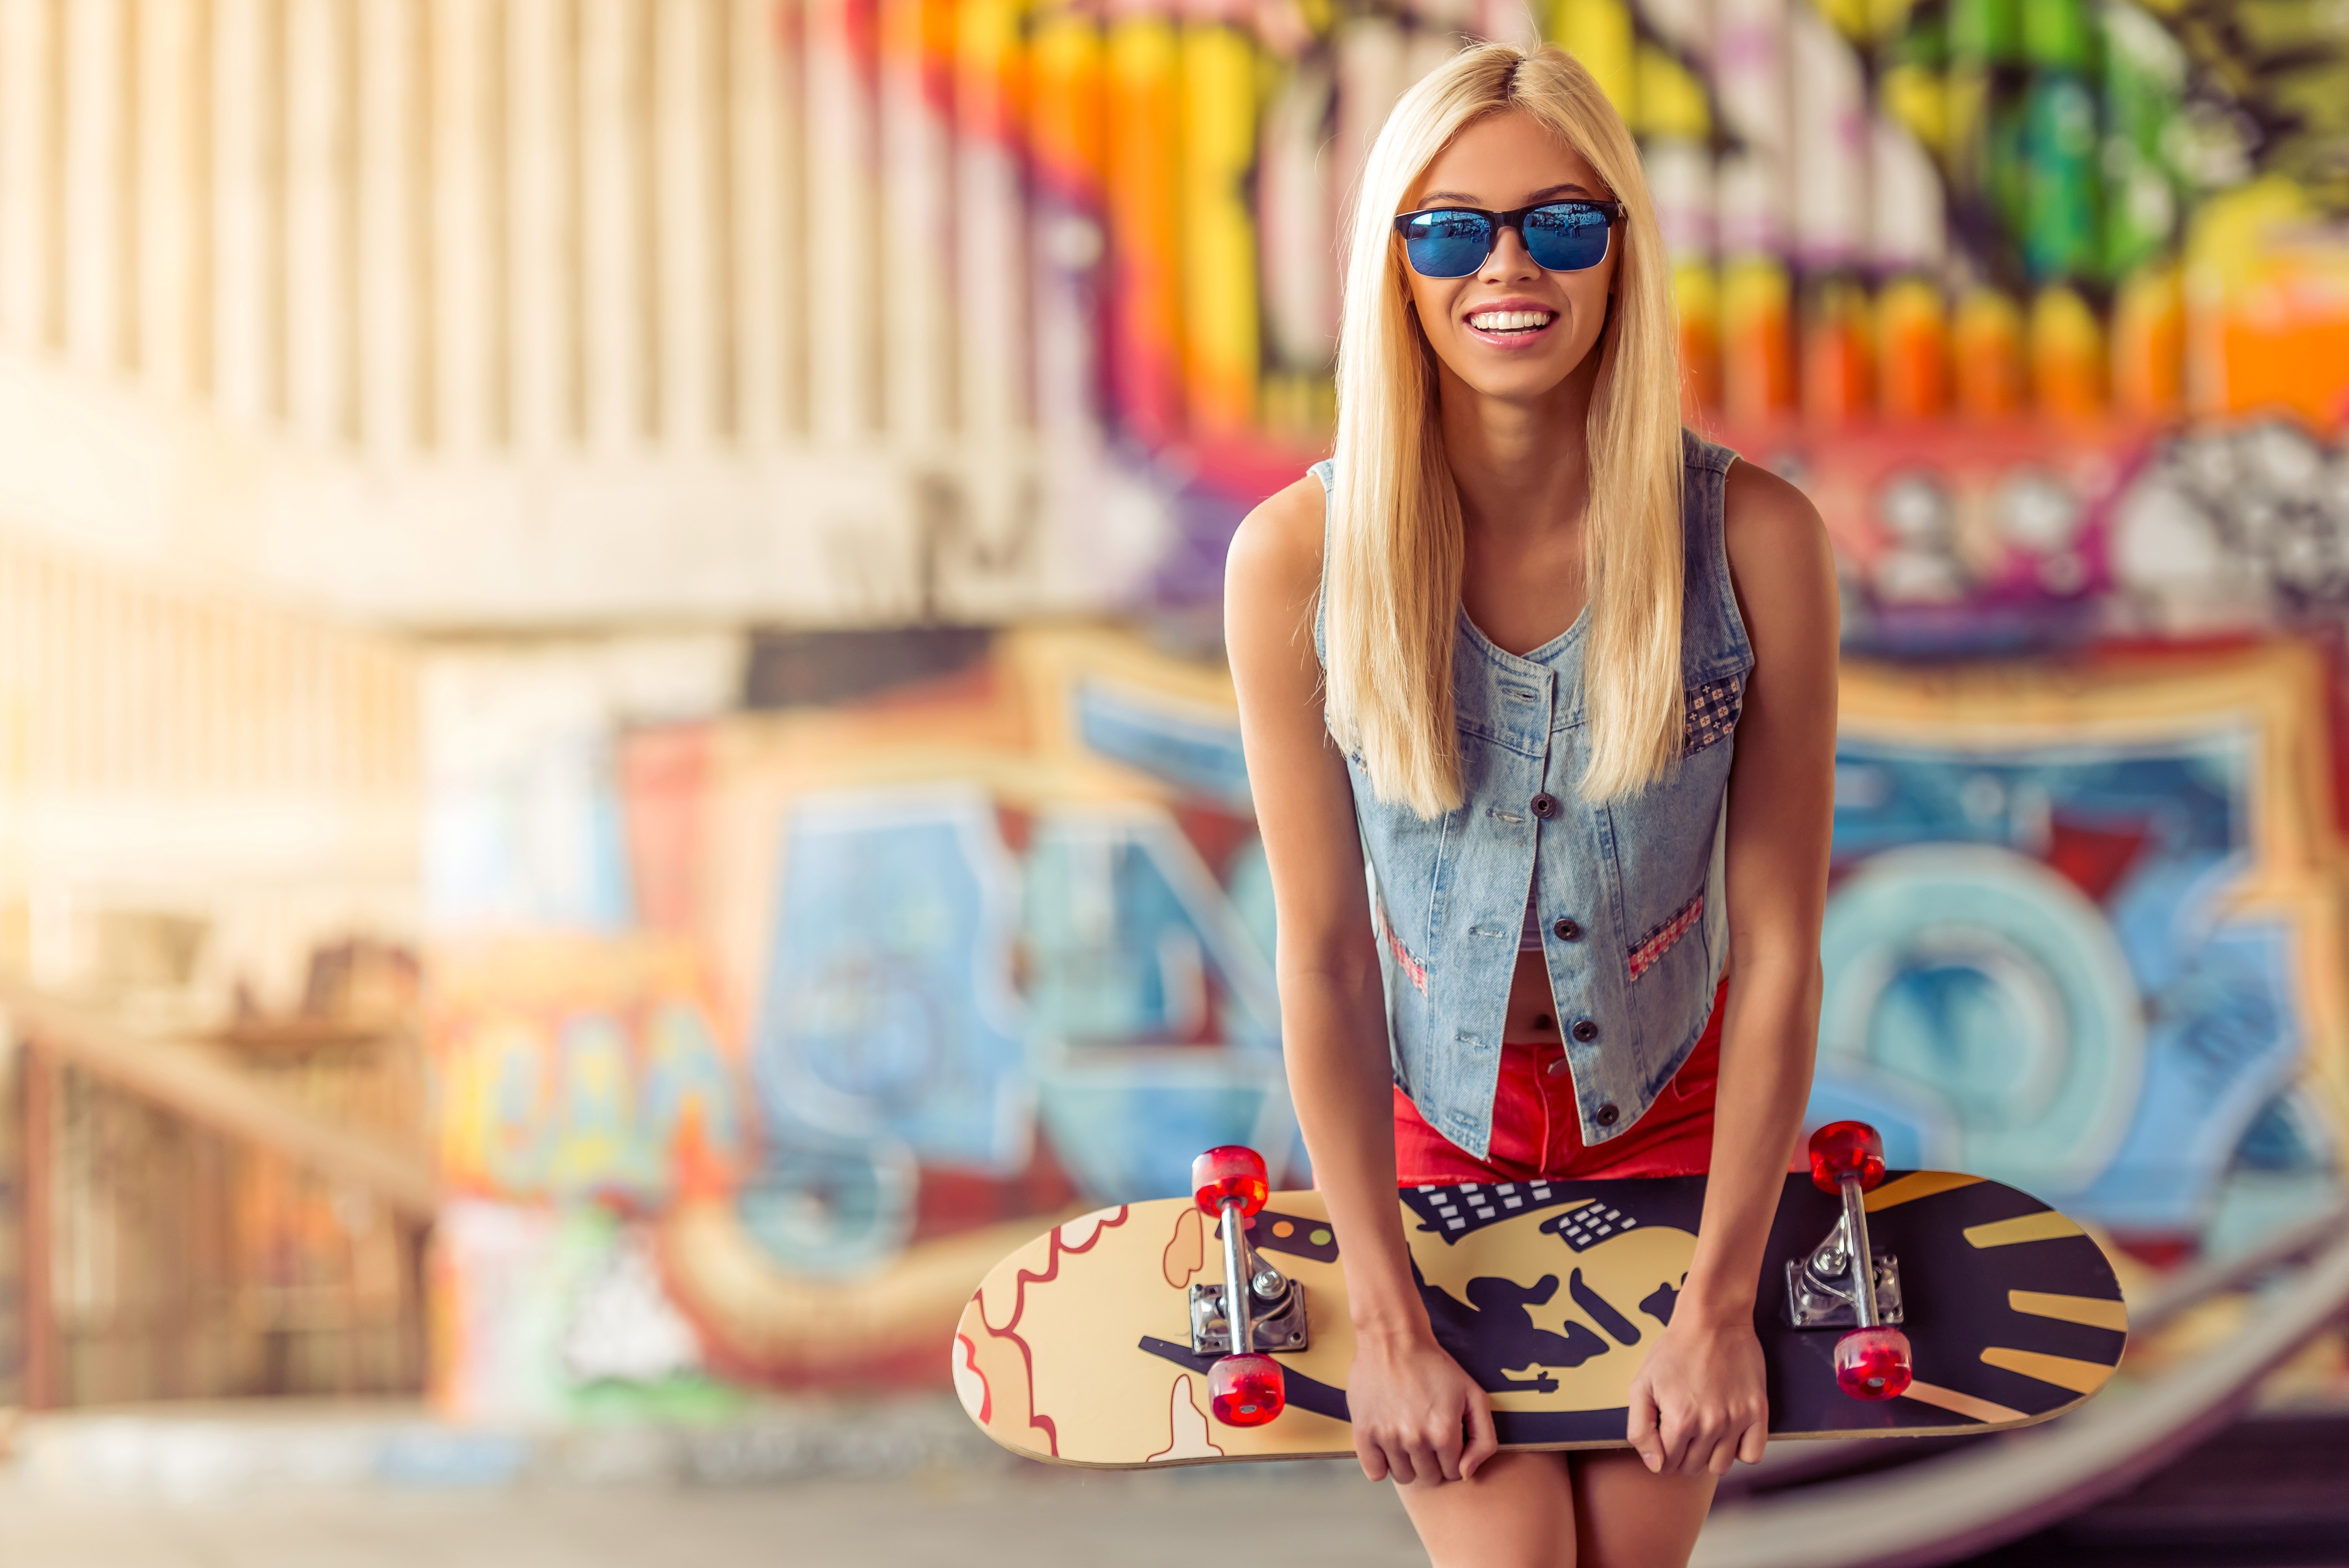 Image: Blonde, glasses, smile, skateboard, blurring, graffiti